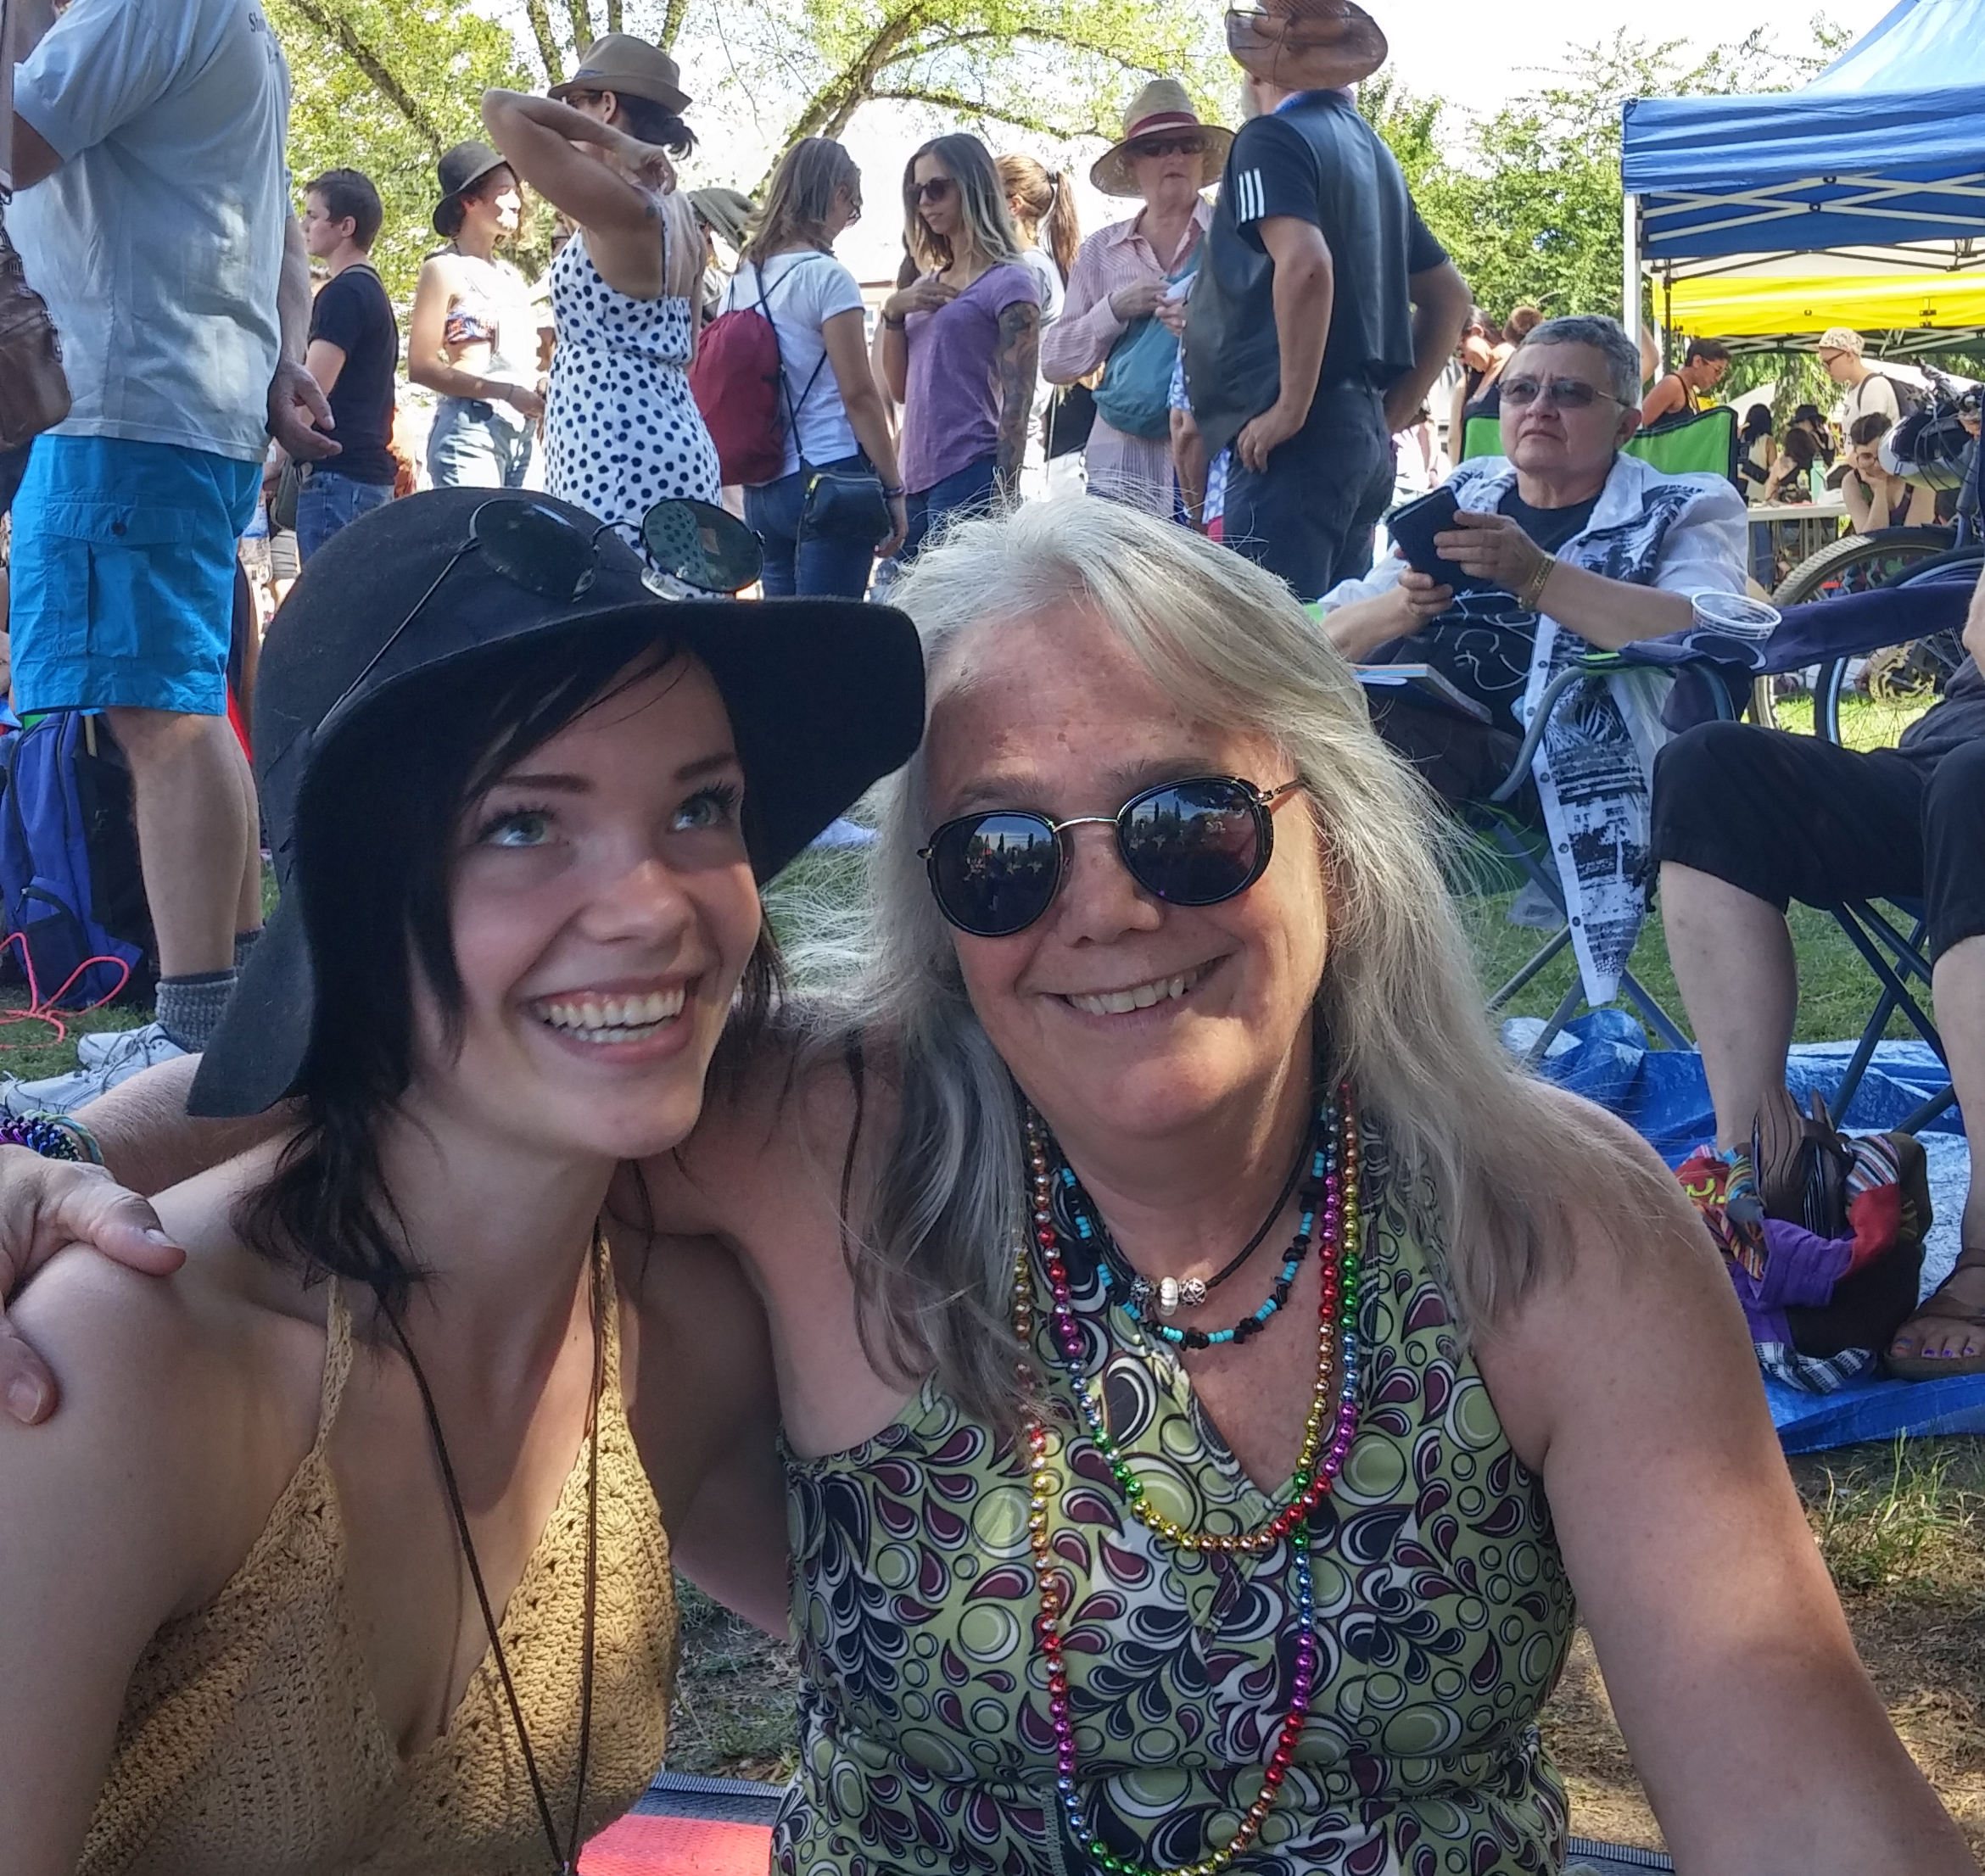 Jude Godwin and her daughter Yvonne, August 2015